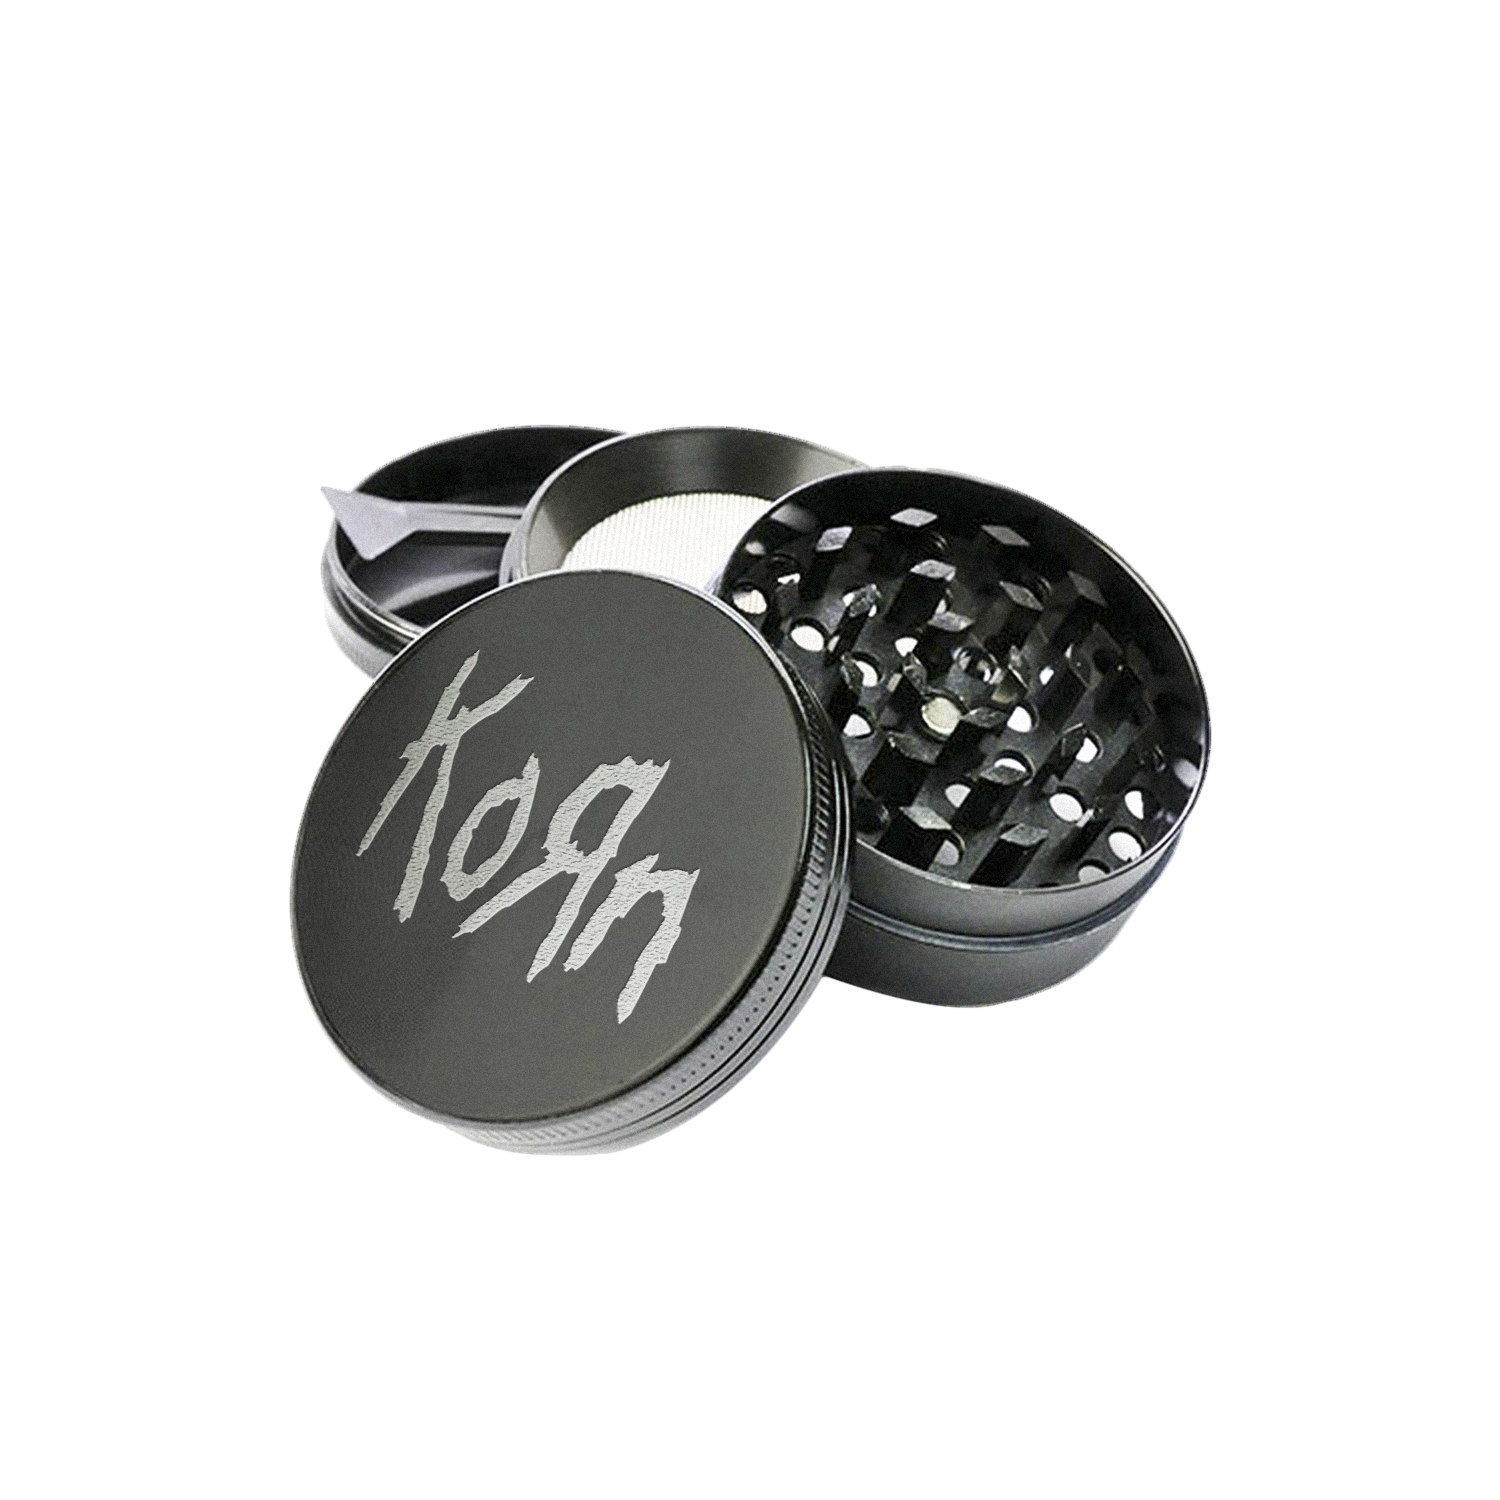 Korn Official Limited Edition Steel Grinder, Exclusive to kornlimited.com, Official Limited Edition, Official Merch, Official Store, Official Shop, Hoodie, Official Merchandise, T-shirt, Hoodie, Jacket, Shirts, Blind Jersey, Shirt, killermerch.com, Killer Merch